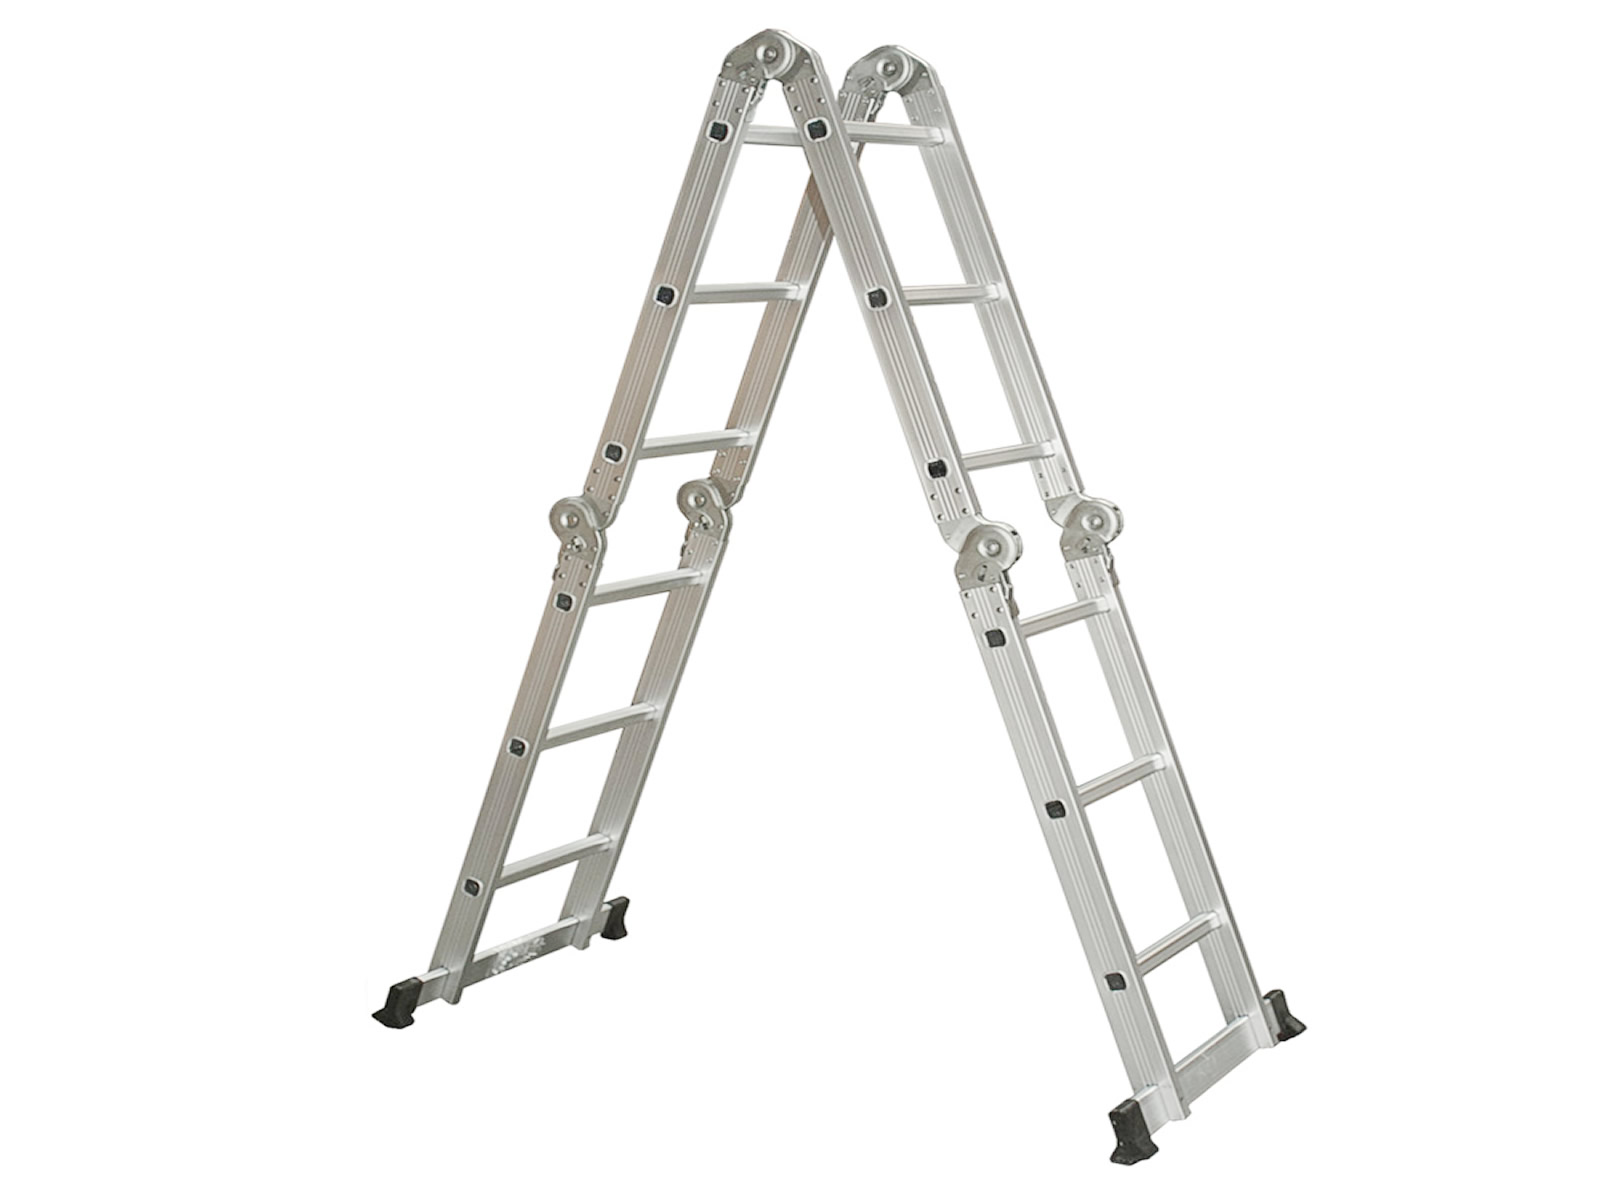 Collapsible Ladder 10 Ft : Folding ladder aluminum ft multi purpose extension